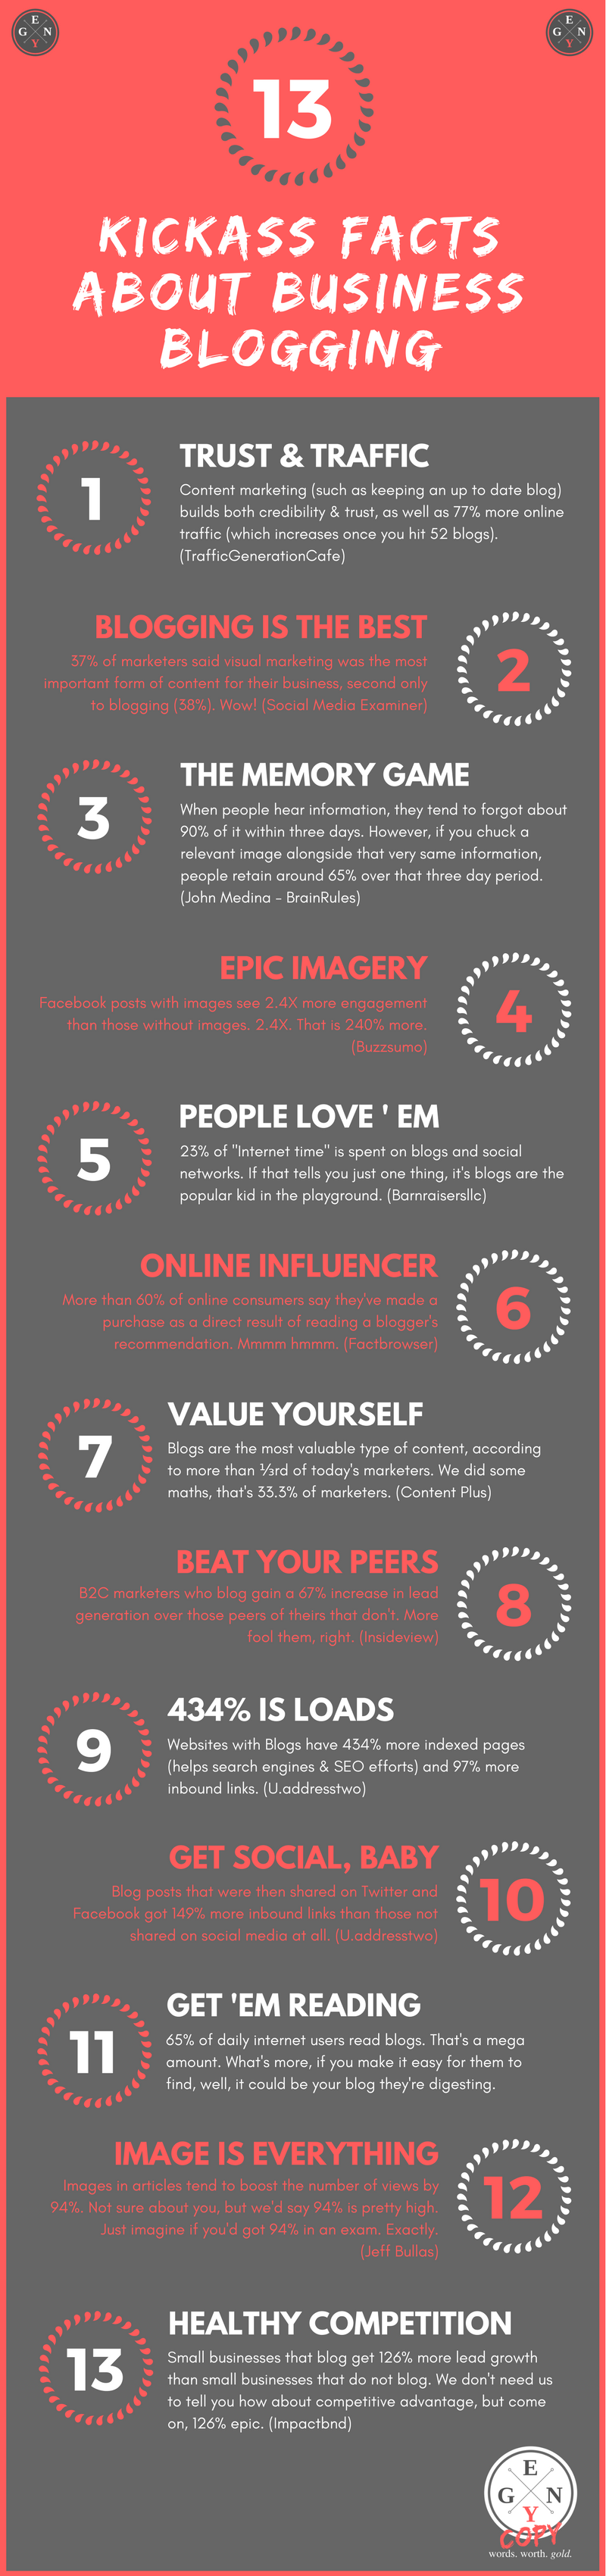 Benefits of blogging in business infographic | Gen Y Copy